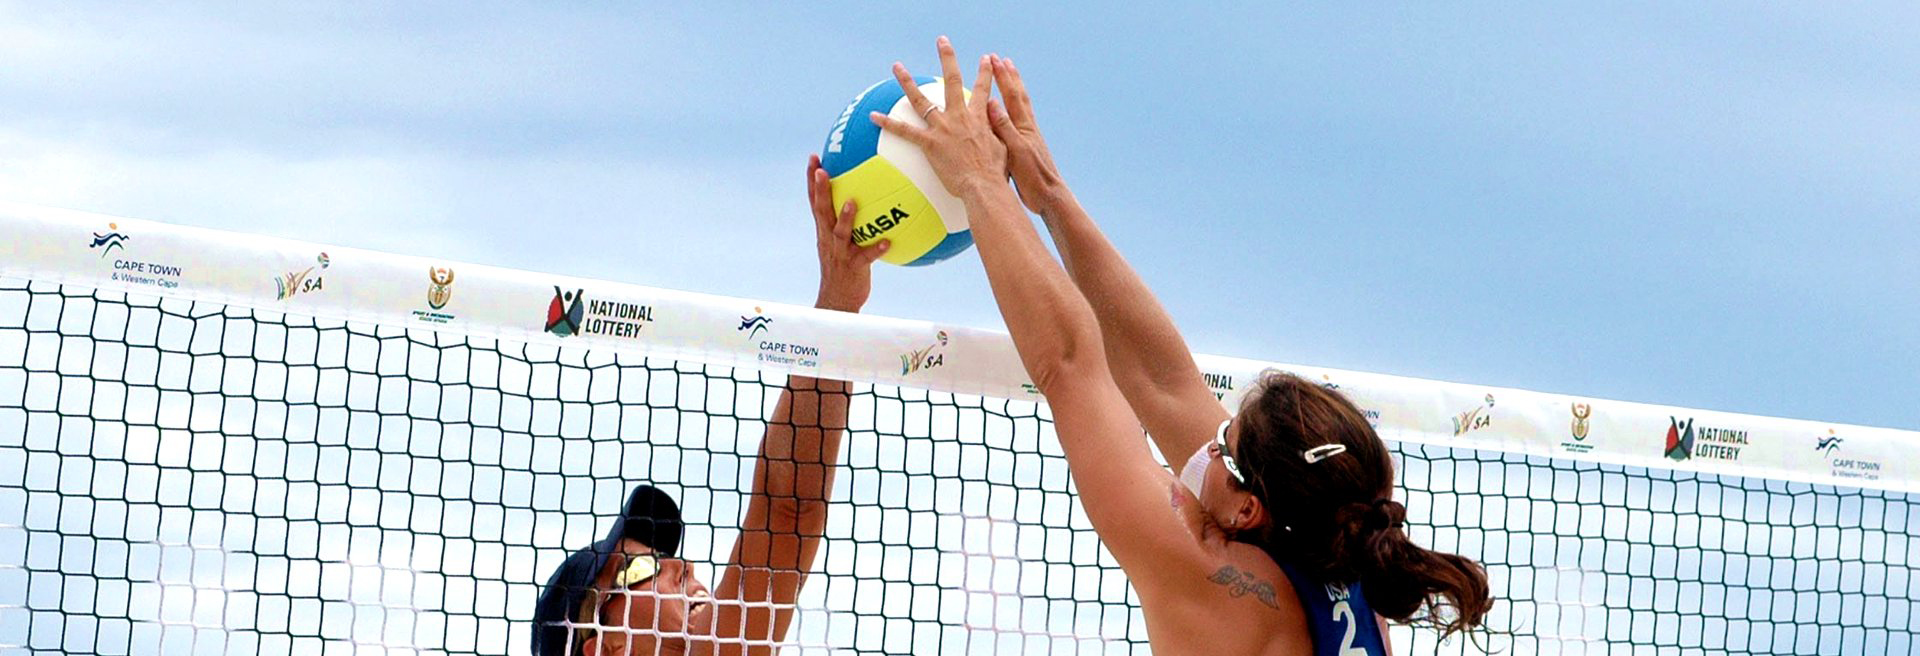 Tournoi de Beach Volley 2014